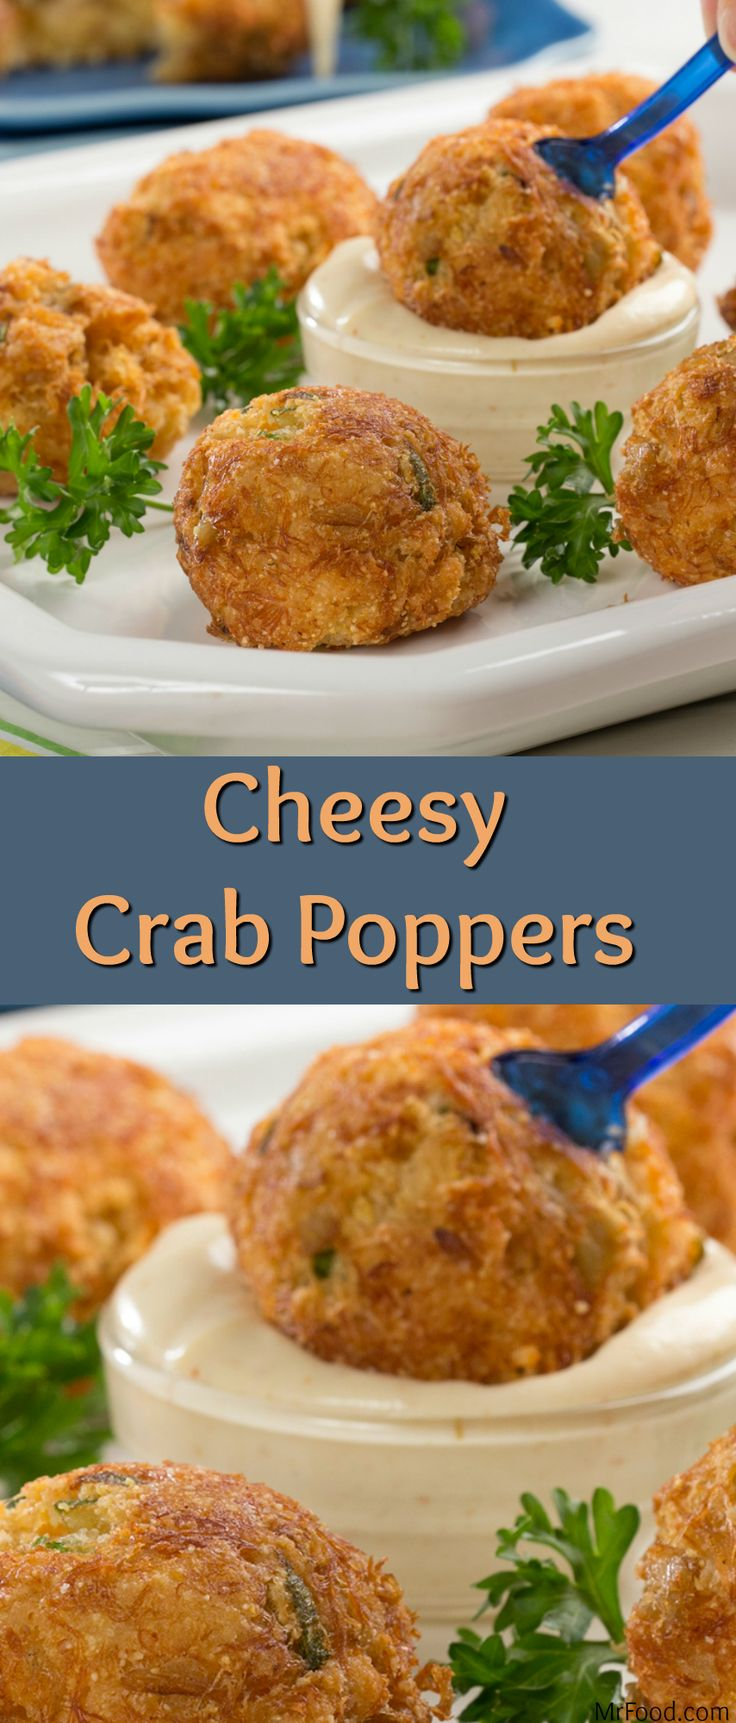 When you're craving the cheesy-fried goodness of a popper, but want something a little different from the average jalapeno popper, make these Cheesy Crab Poppers. They're crispy, cheesy, and have just a light kick to 'em, making them the perfect party appetizer.